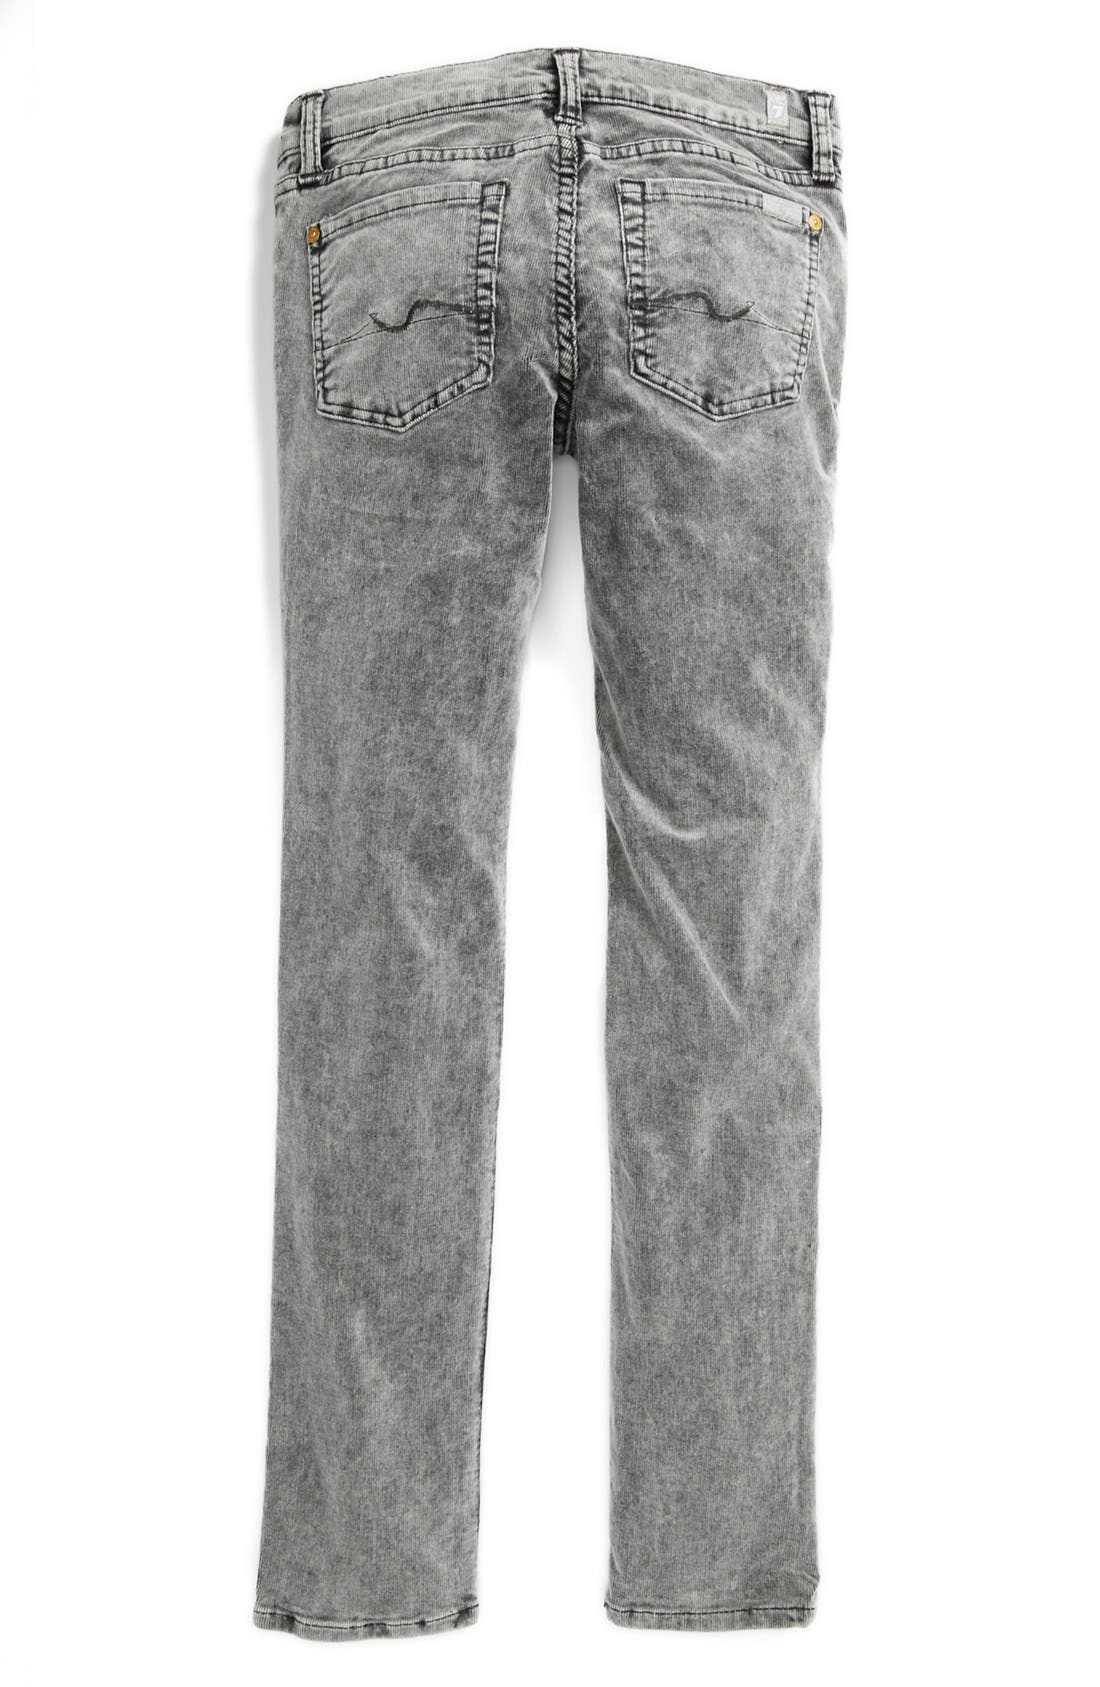 Alternate Image 1 Selected - 7 For All Mankind 'Roxanne' Skinny Corduroys (Big Girls)